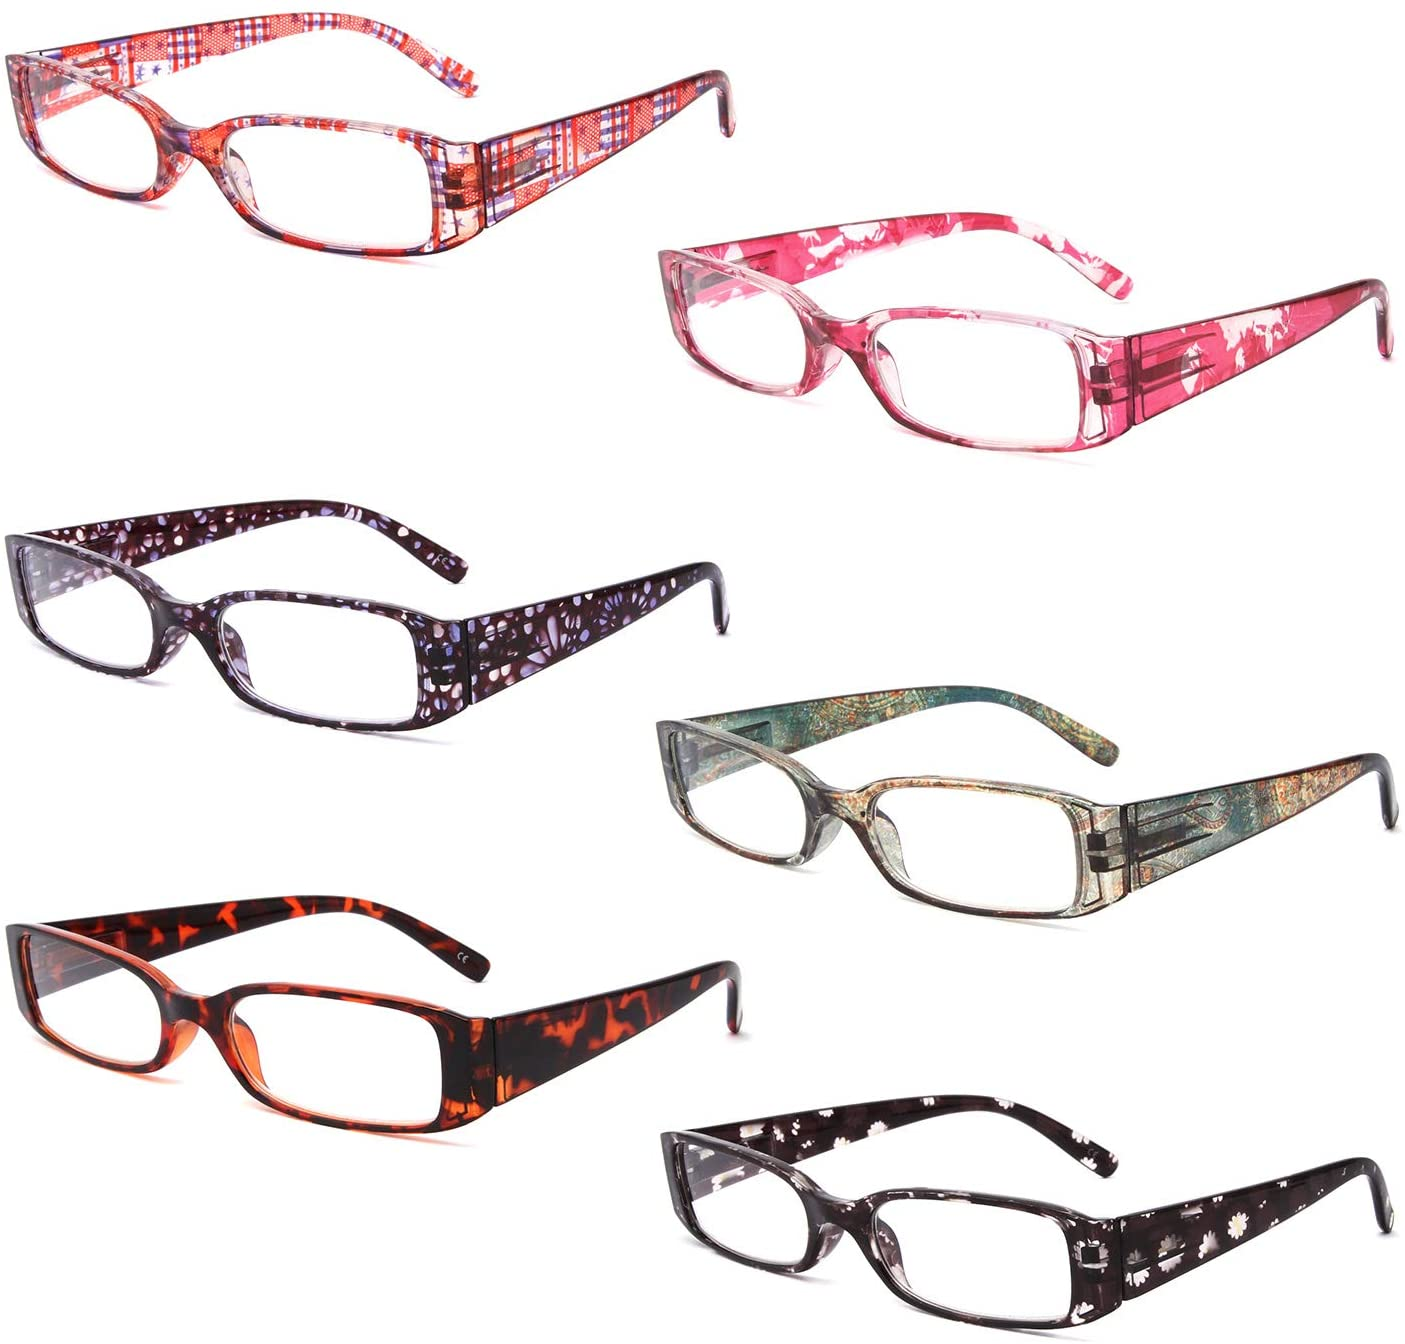 Reading Glasses 6 Pack Ladies Quality Fashion Colorful Rectangular Readers for Women